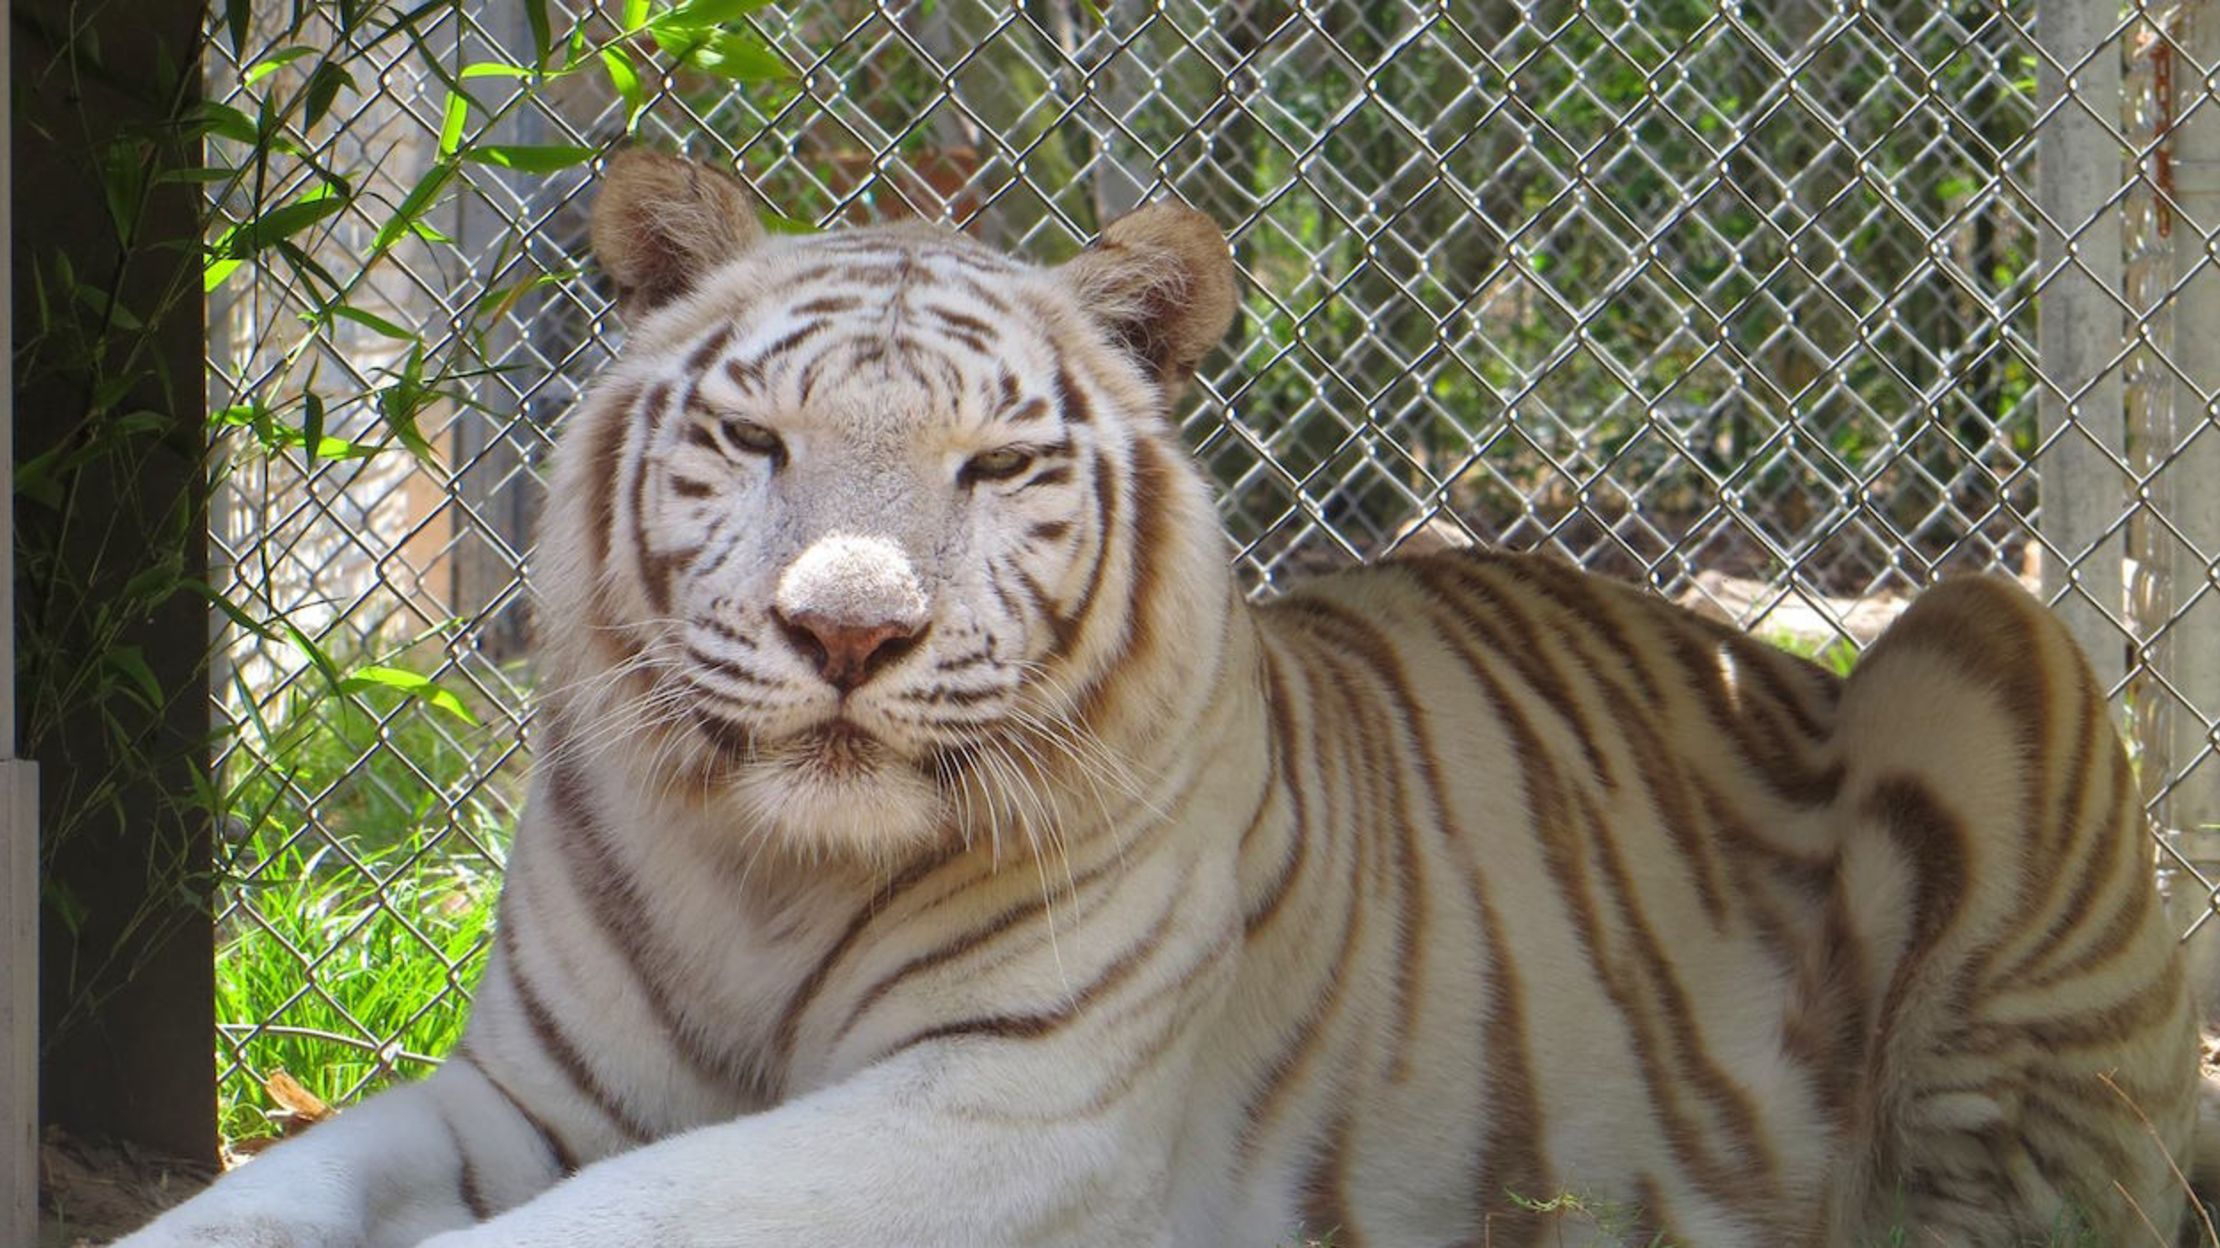 There's a Zoo for Sale on Craigslist (Animals Included ...